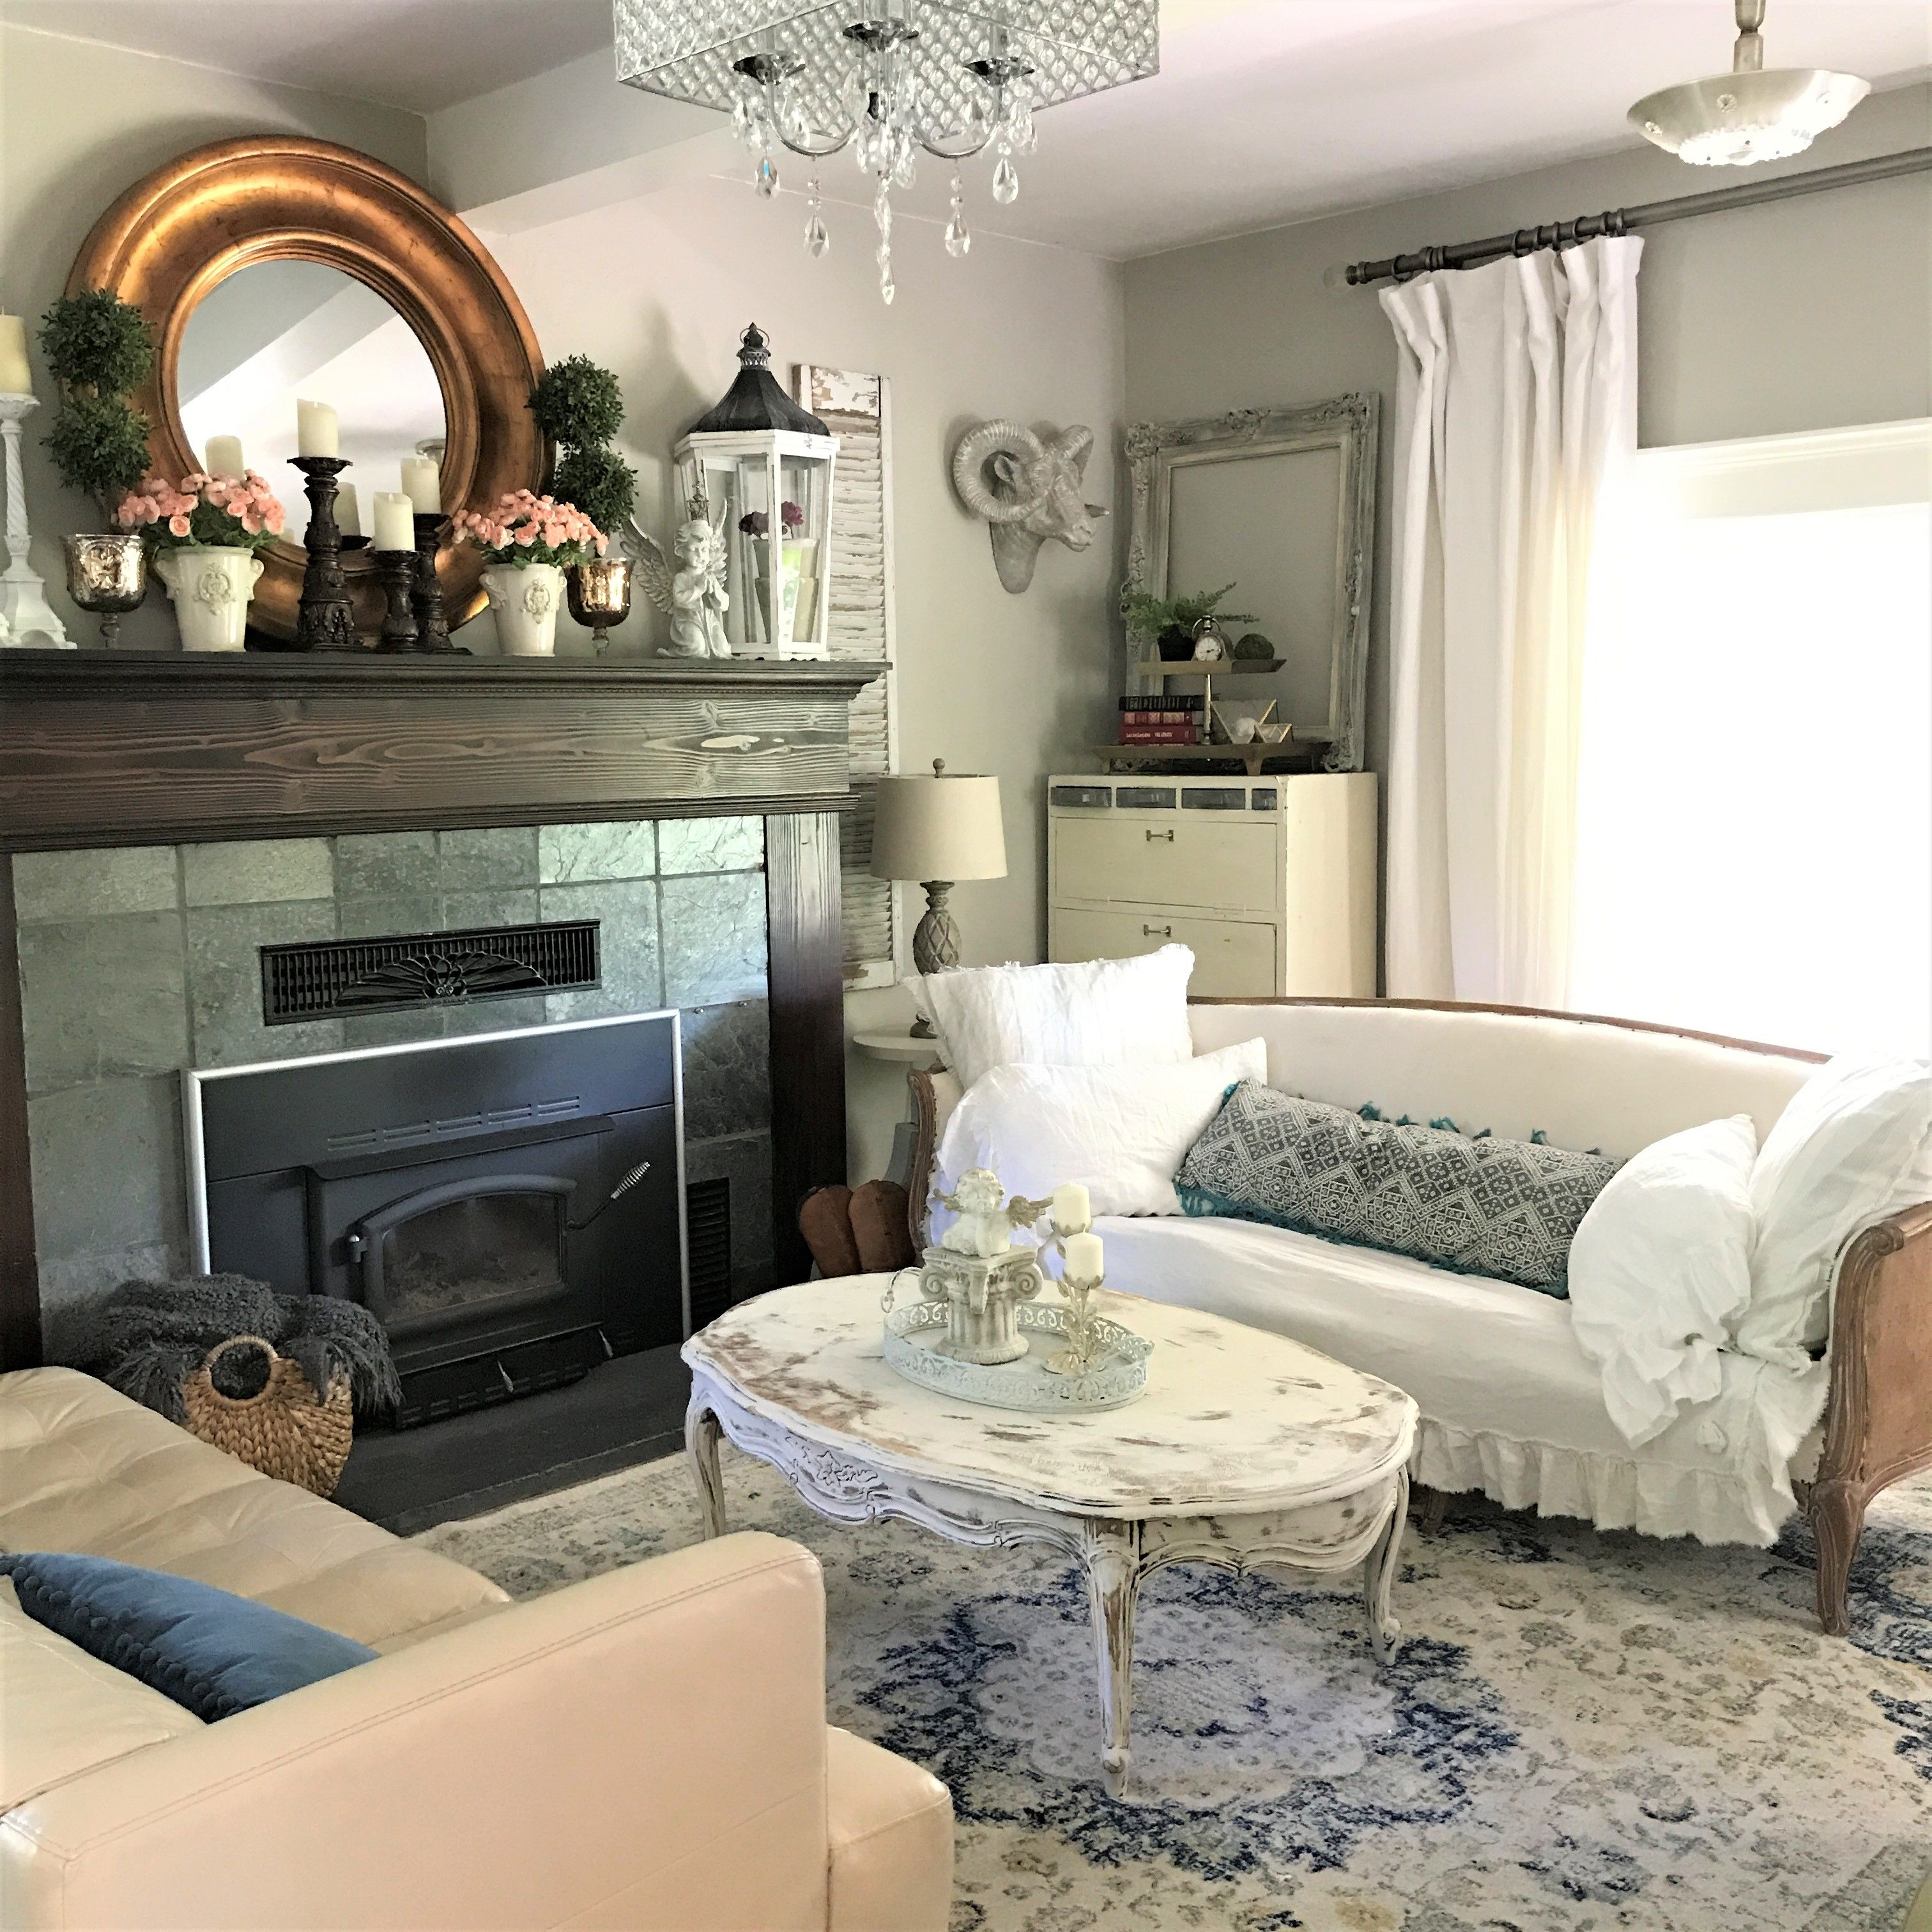 How to Create a Colorful Shabby Chic Living Room